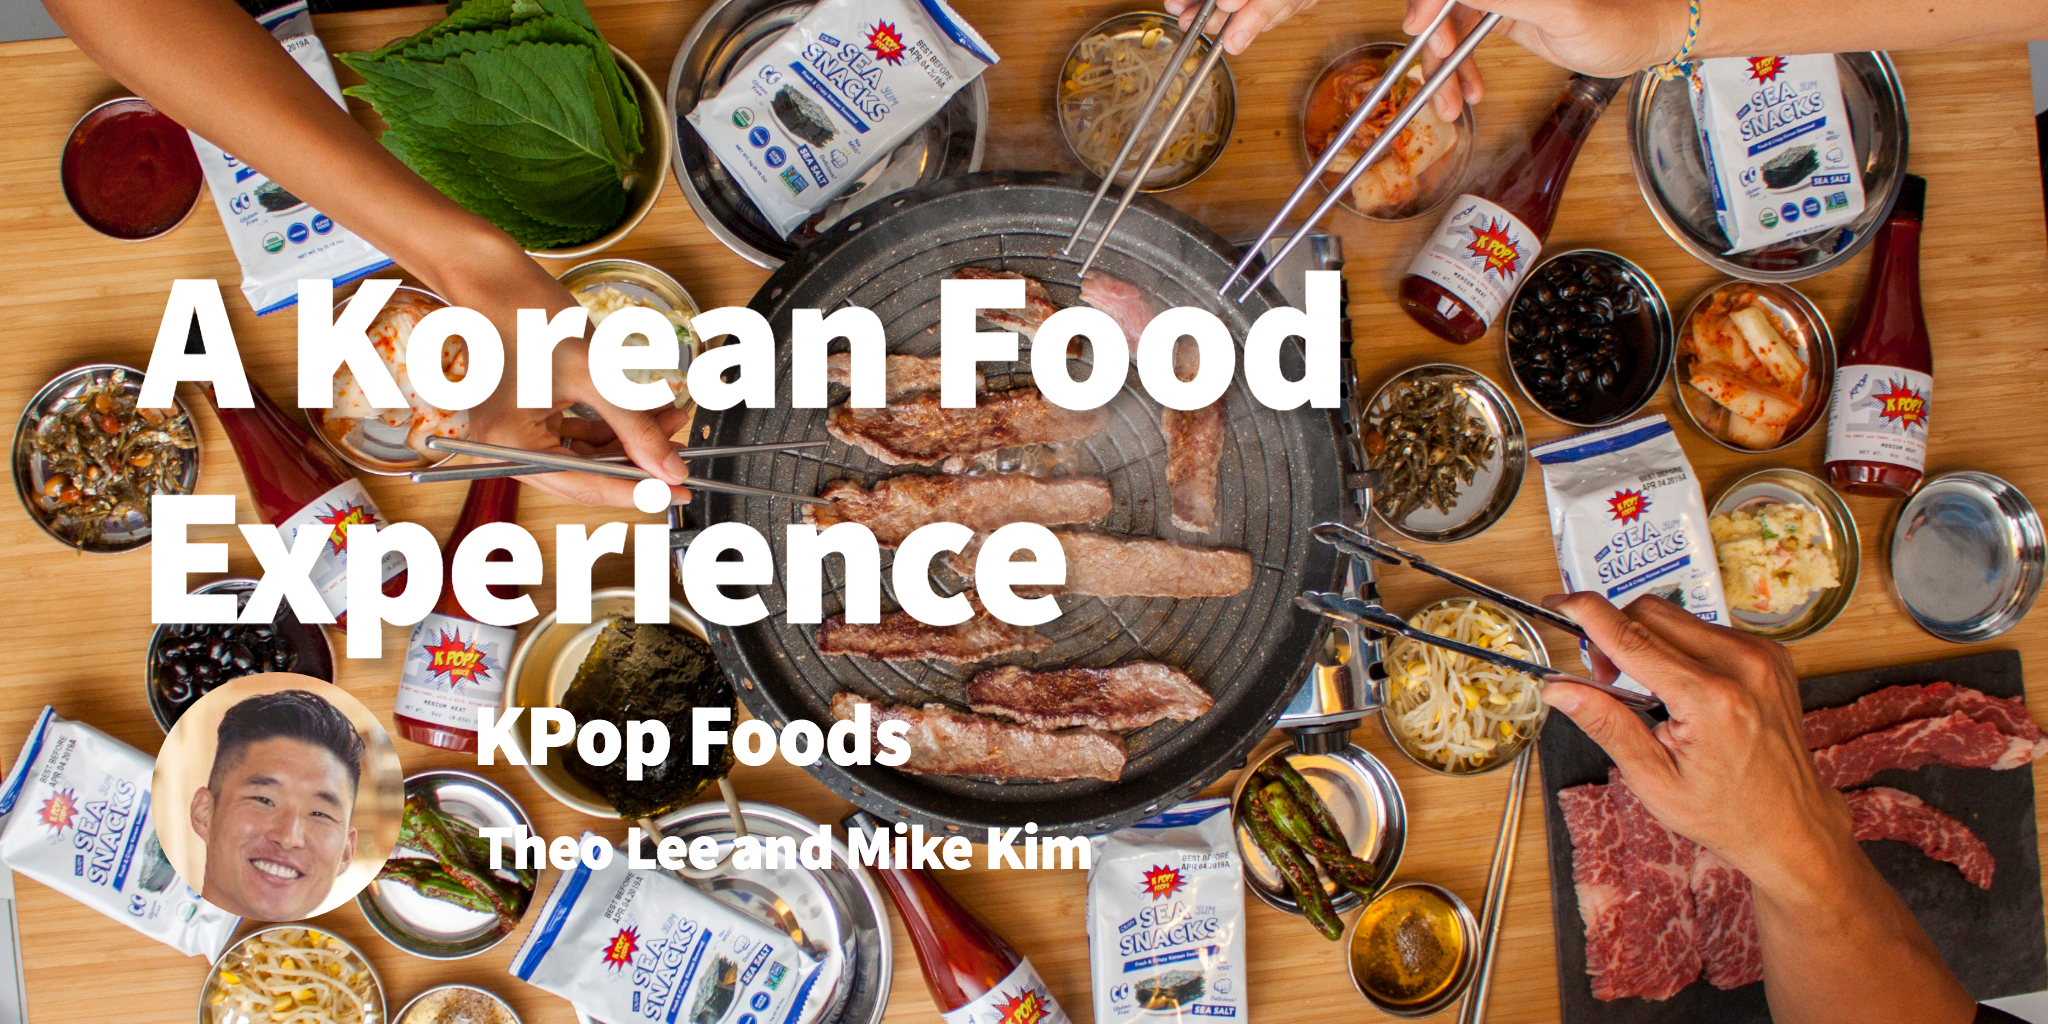 KPOP Foods Theo Lee and Mike Kim